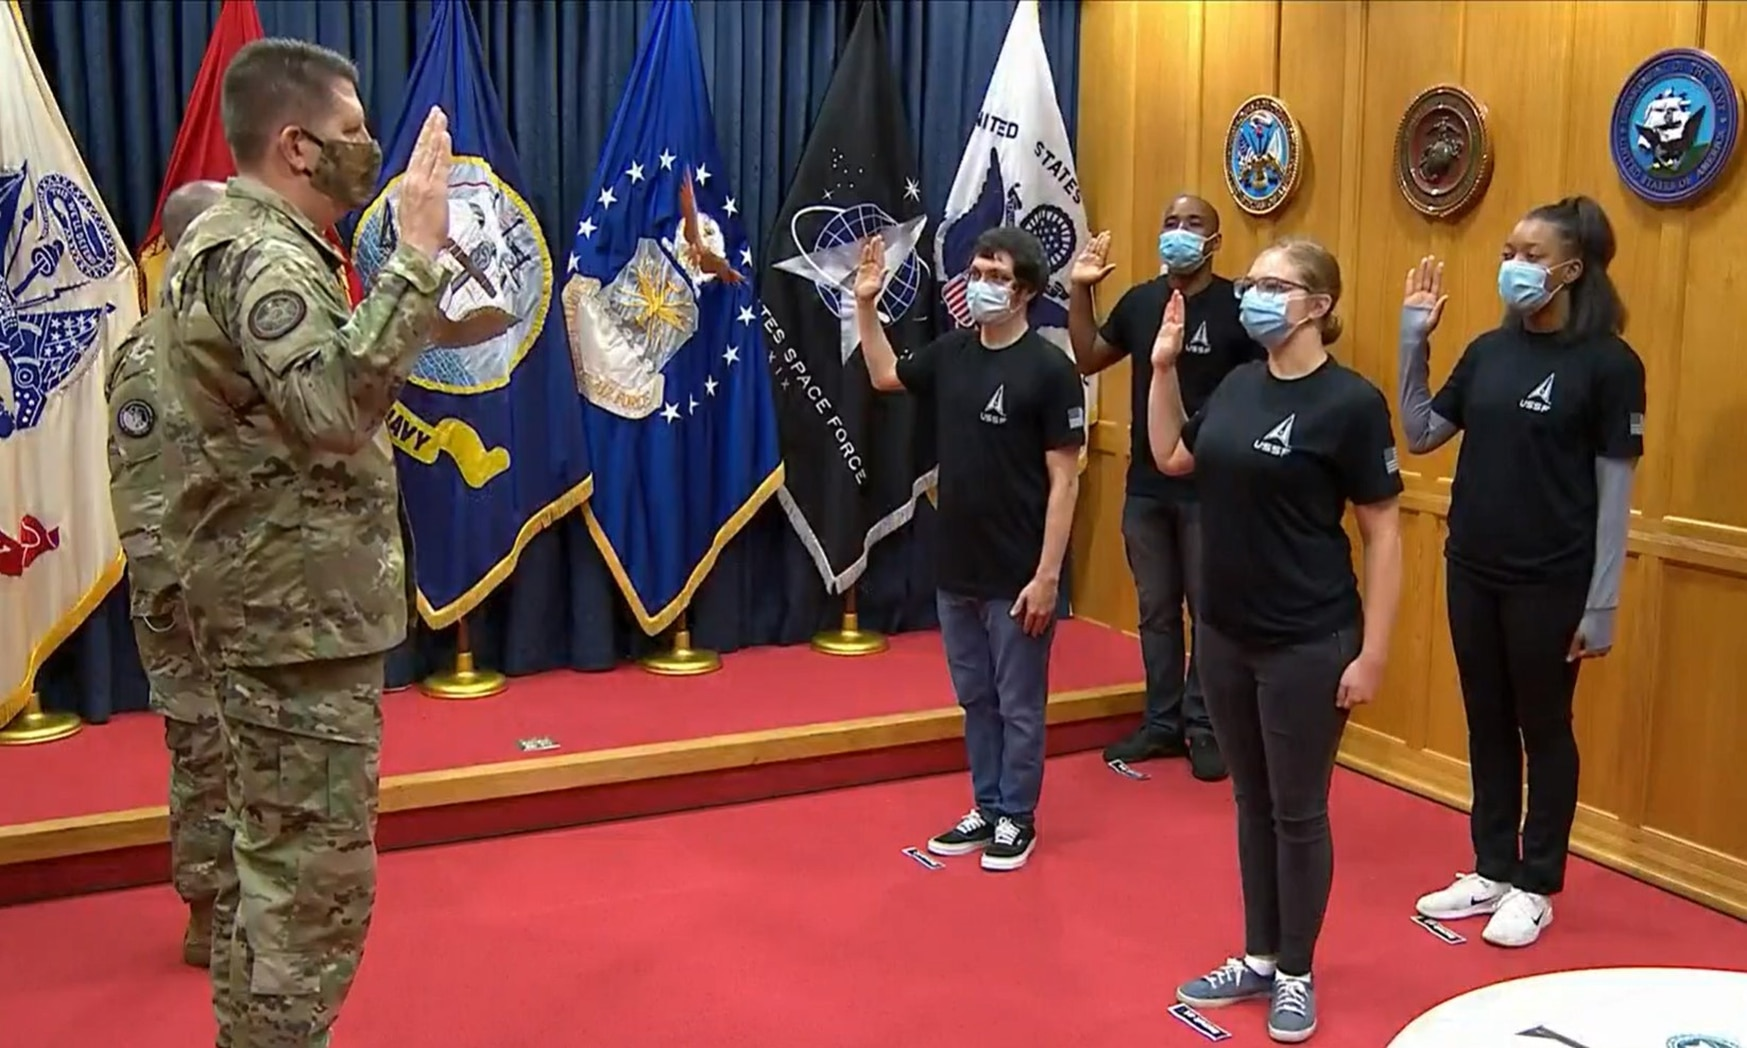 Vice Chief of Space Operations Gen. David Thompson swears in the first four enlisted recruits to the Space Force at Military Entrance Processing Station-Baltimore in Maryland on Oct. 20, 2020. (Screenshot from a U.S. Defense Department livestream)